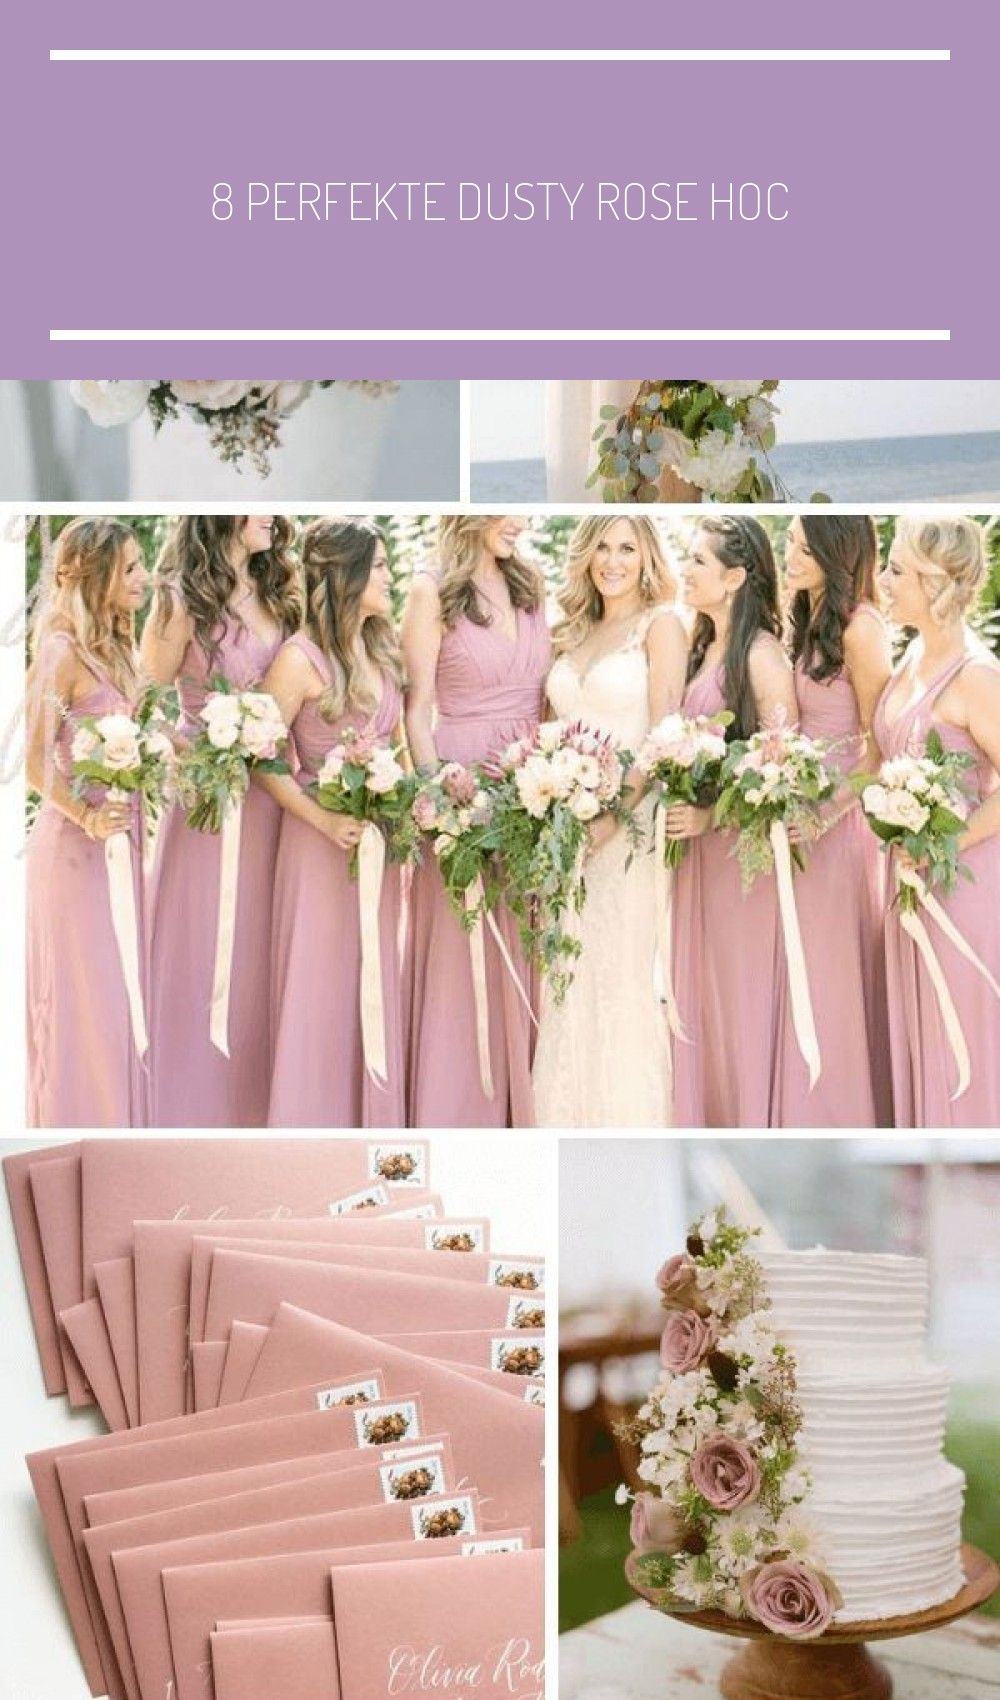 8 Perfekte Dusty Rose Hochzeit Farbpaletten Fur 2019 Wedding Bullet Journal Bullet Dusty Farbpaletten Fur Hochzeit Journal Perfekte Rose Wedding In 2020